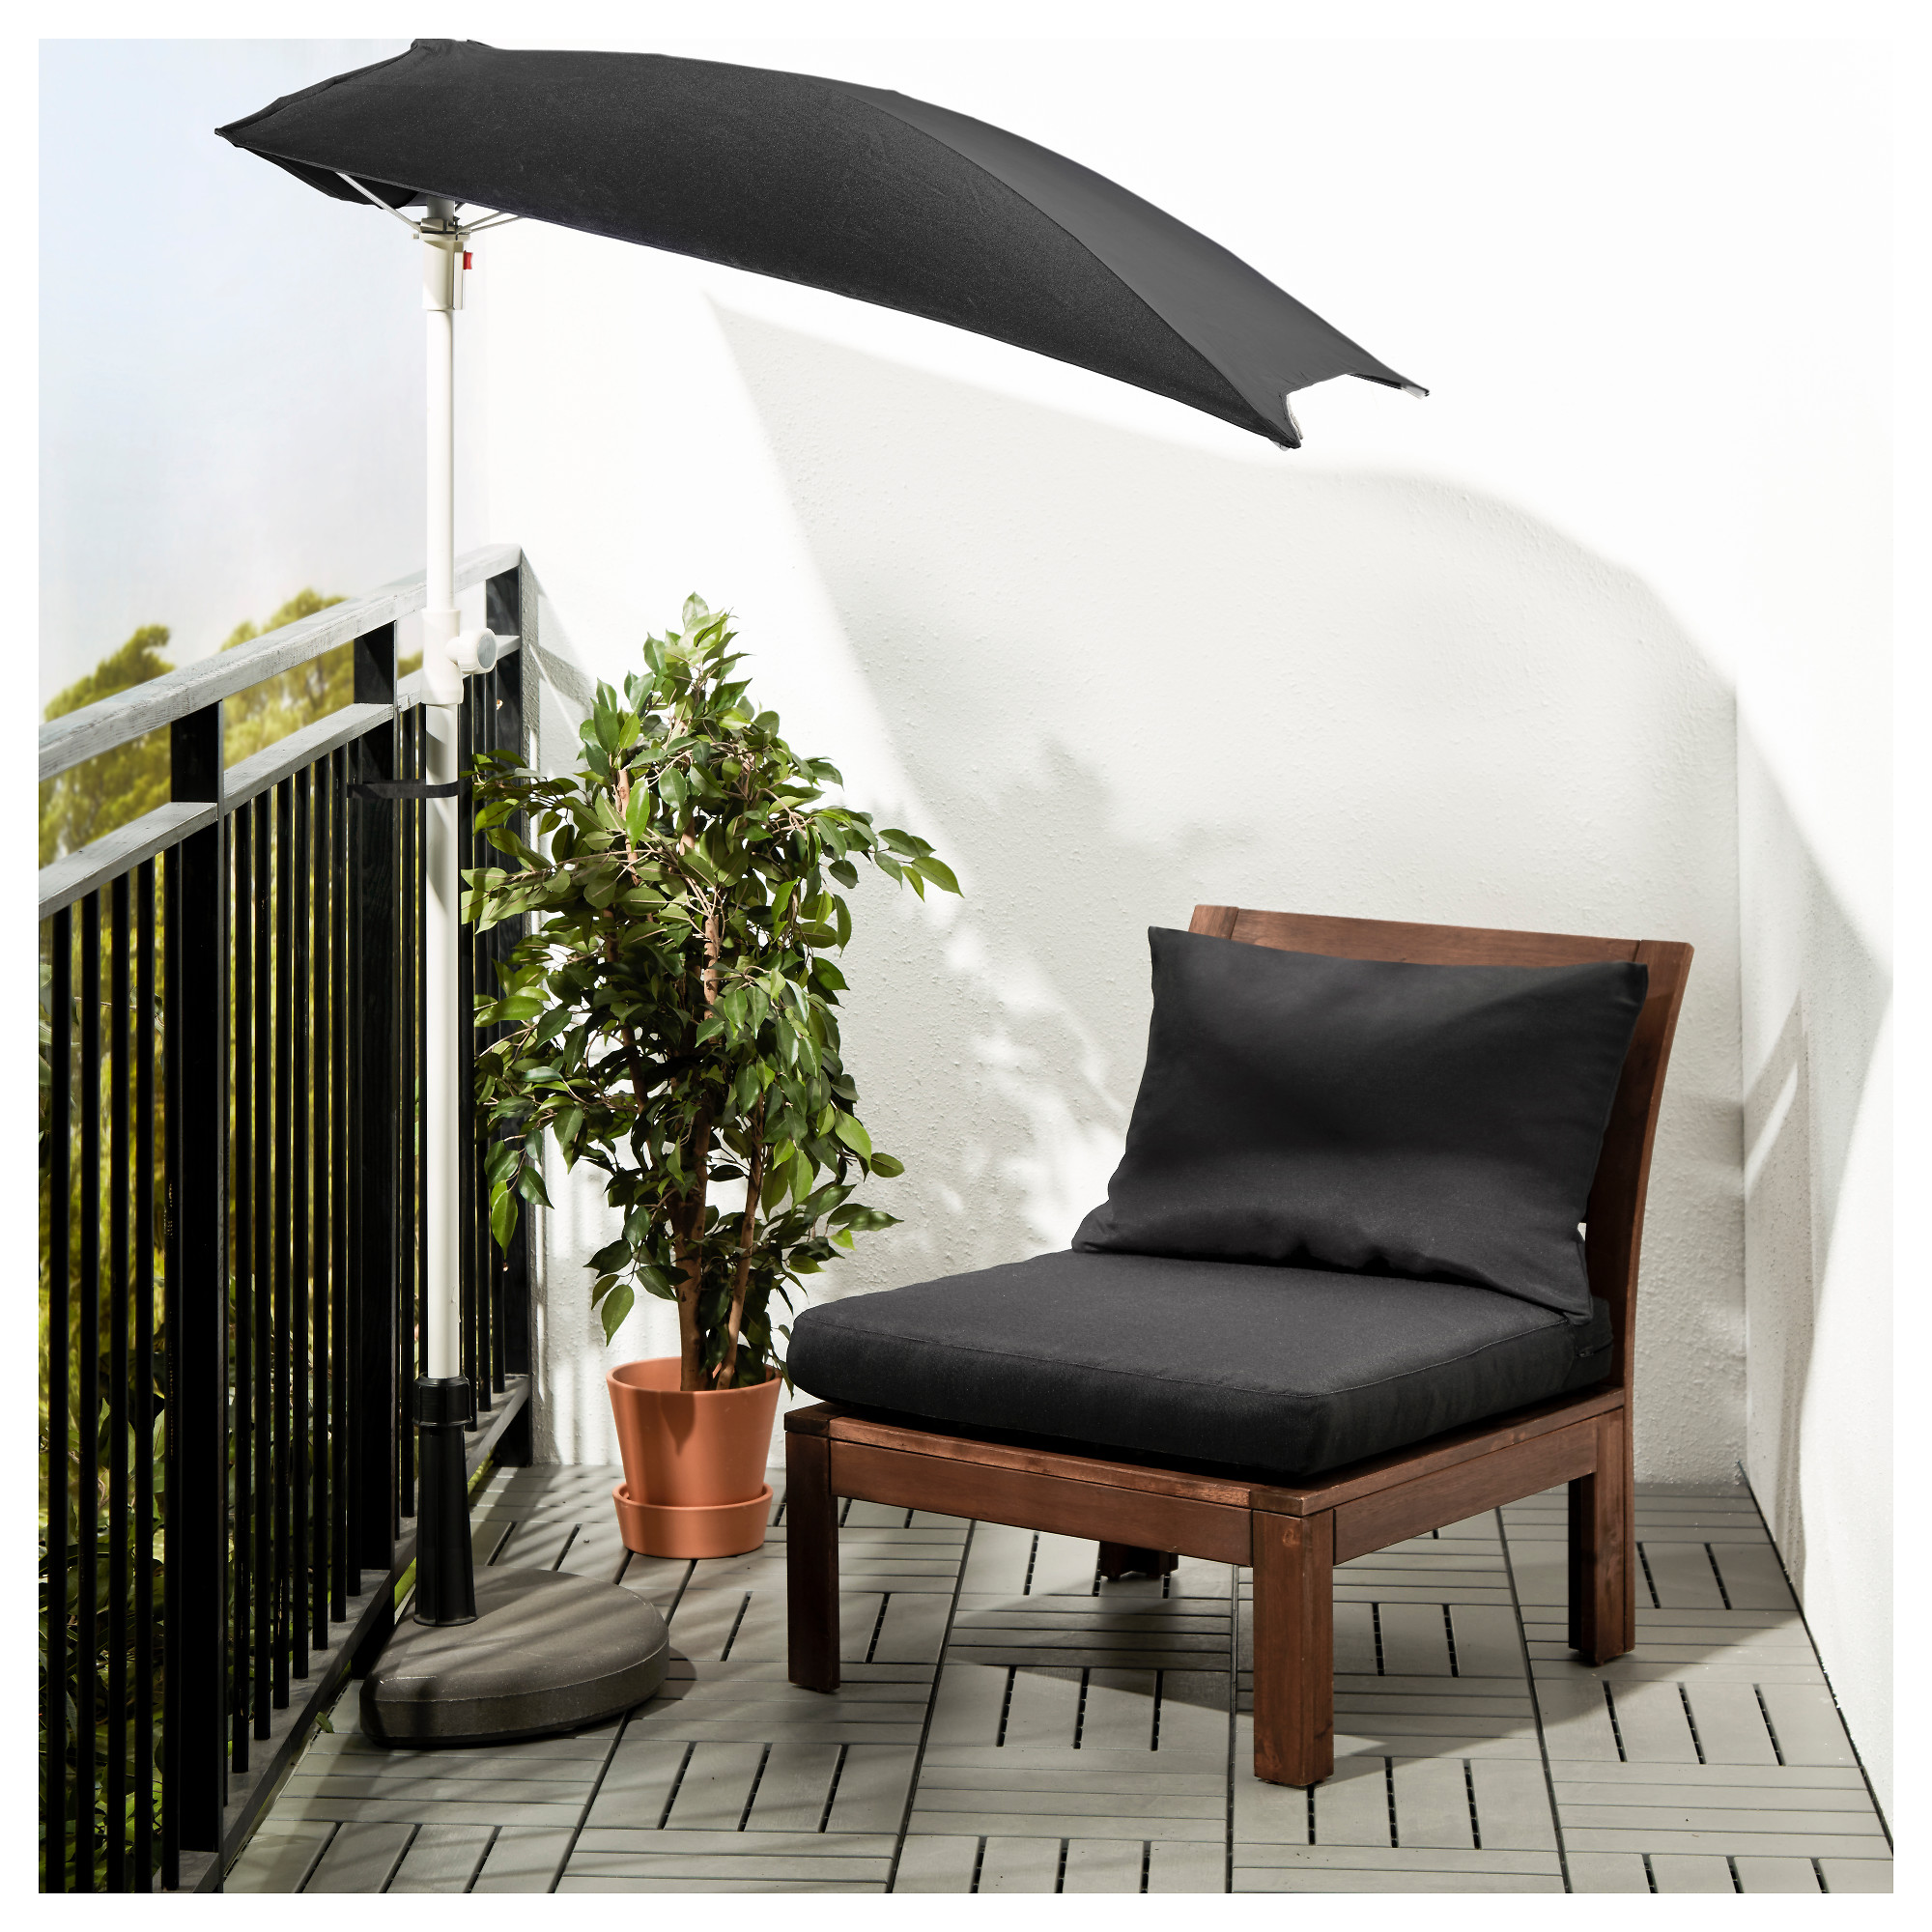 pplar chair with footstool outdoor brown stainedhll beige ikea - Bergroer Sessel Und Ottomane